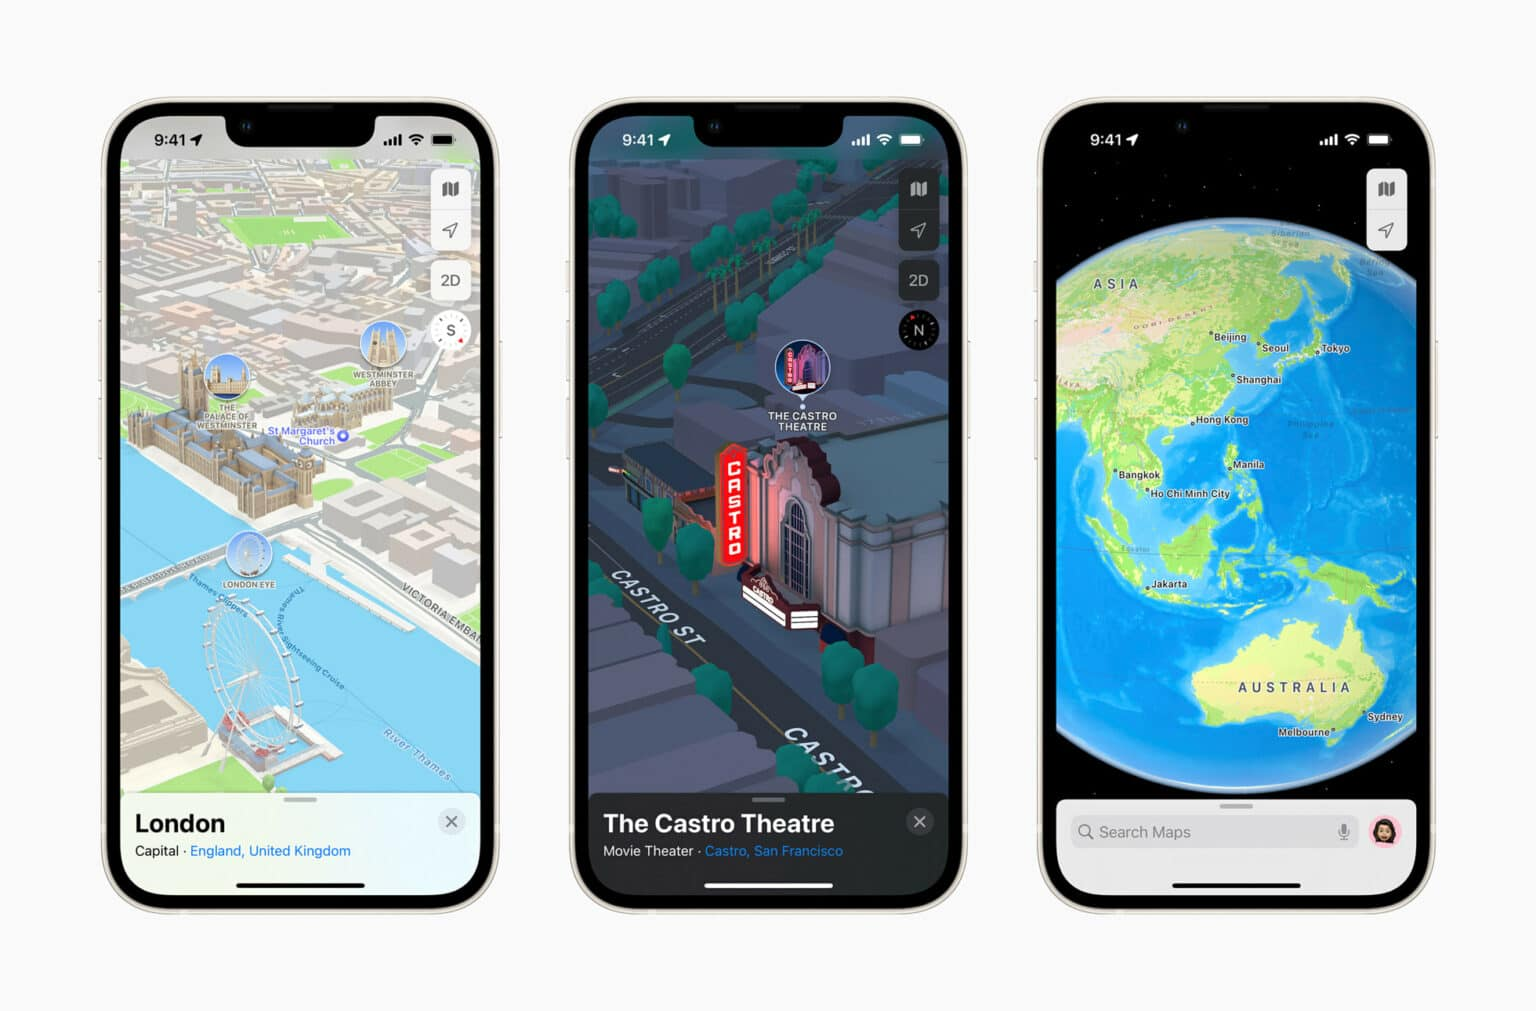 The iOS 15 updates to Apple Maps include 3D imagery and much more.